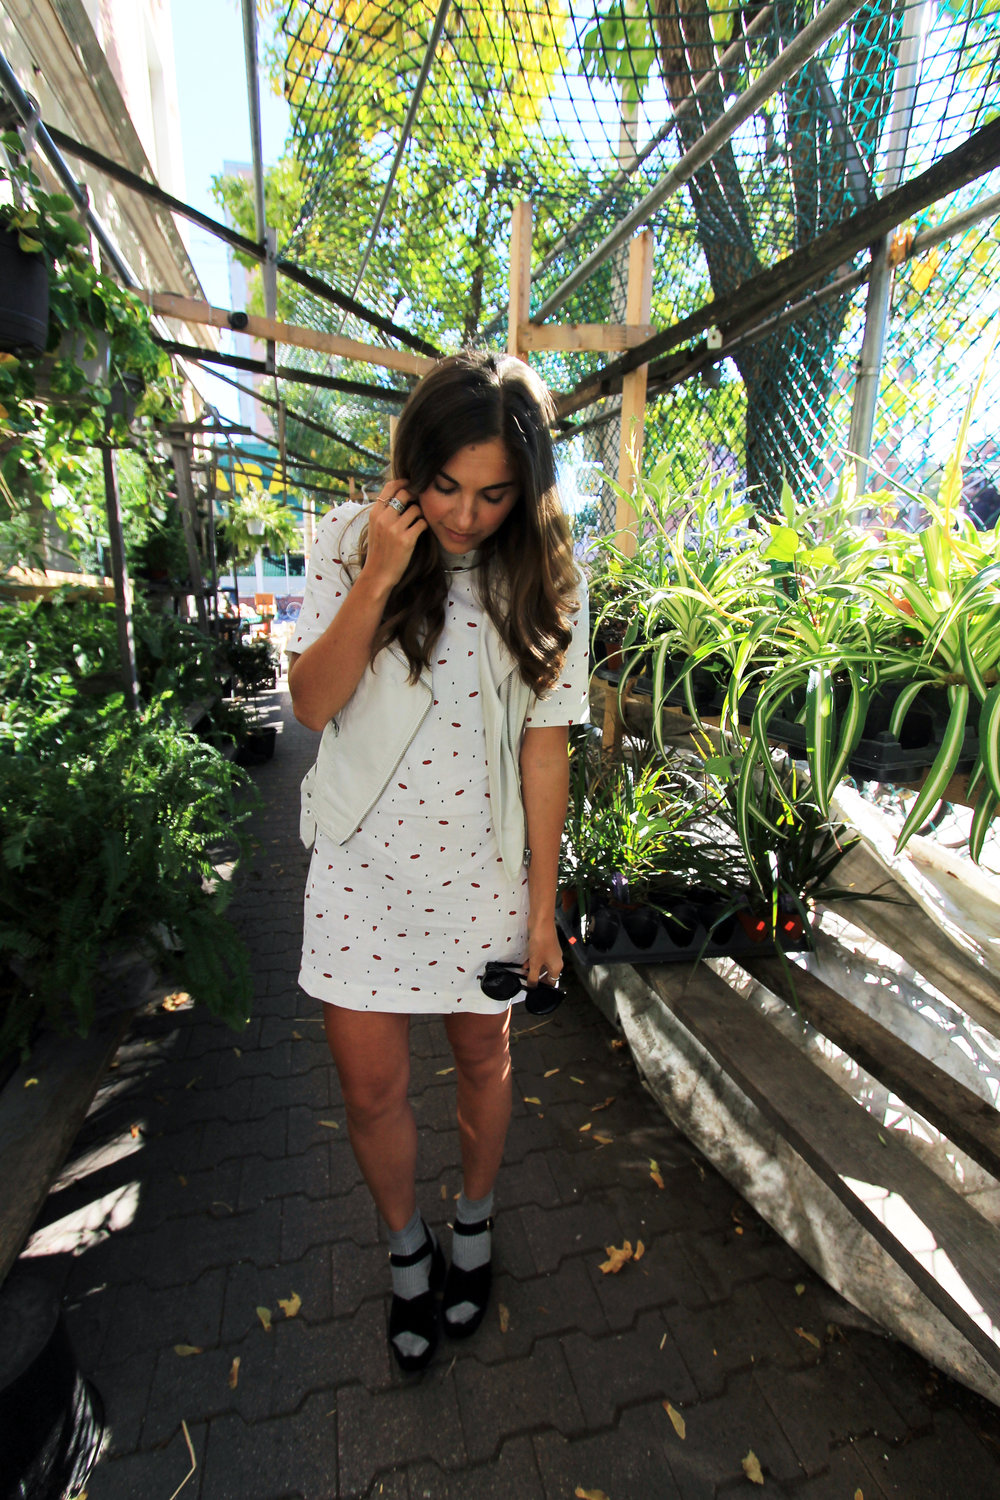 & other stories dress topshop white leather vest moto outfit street style.jpg